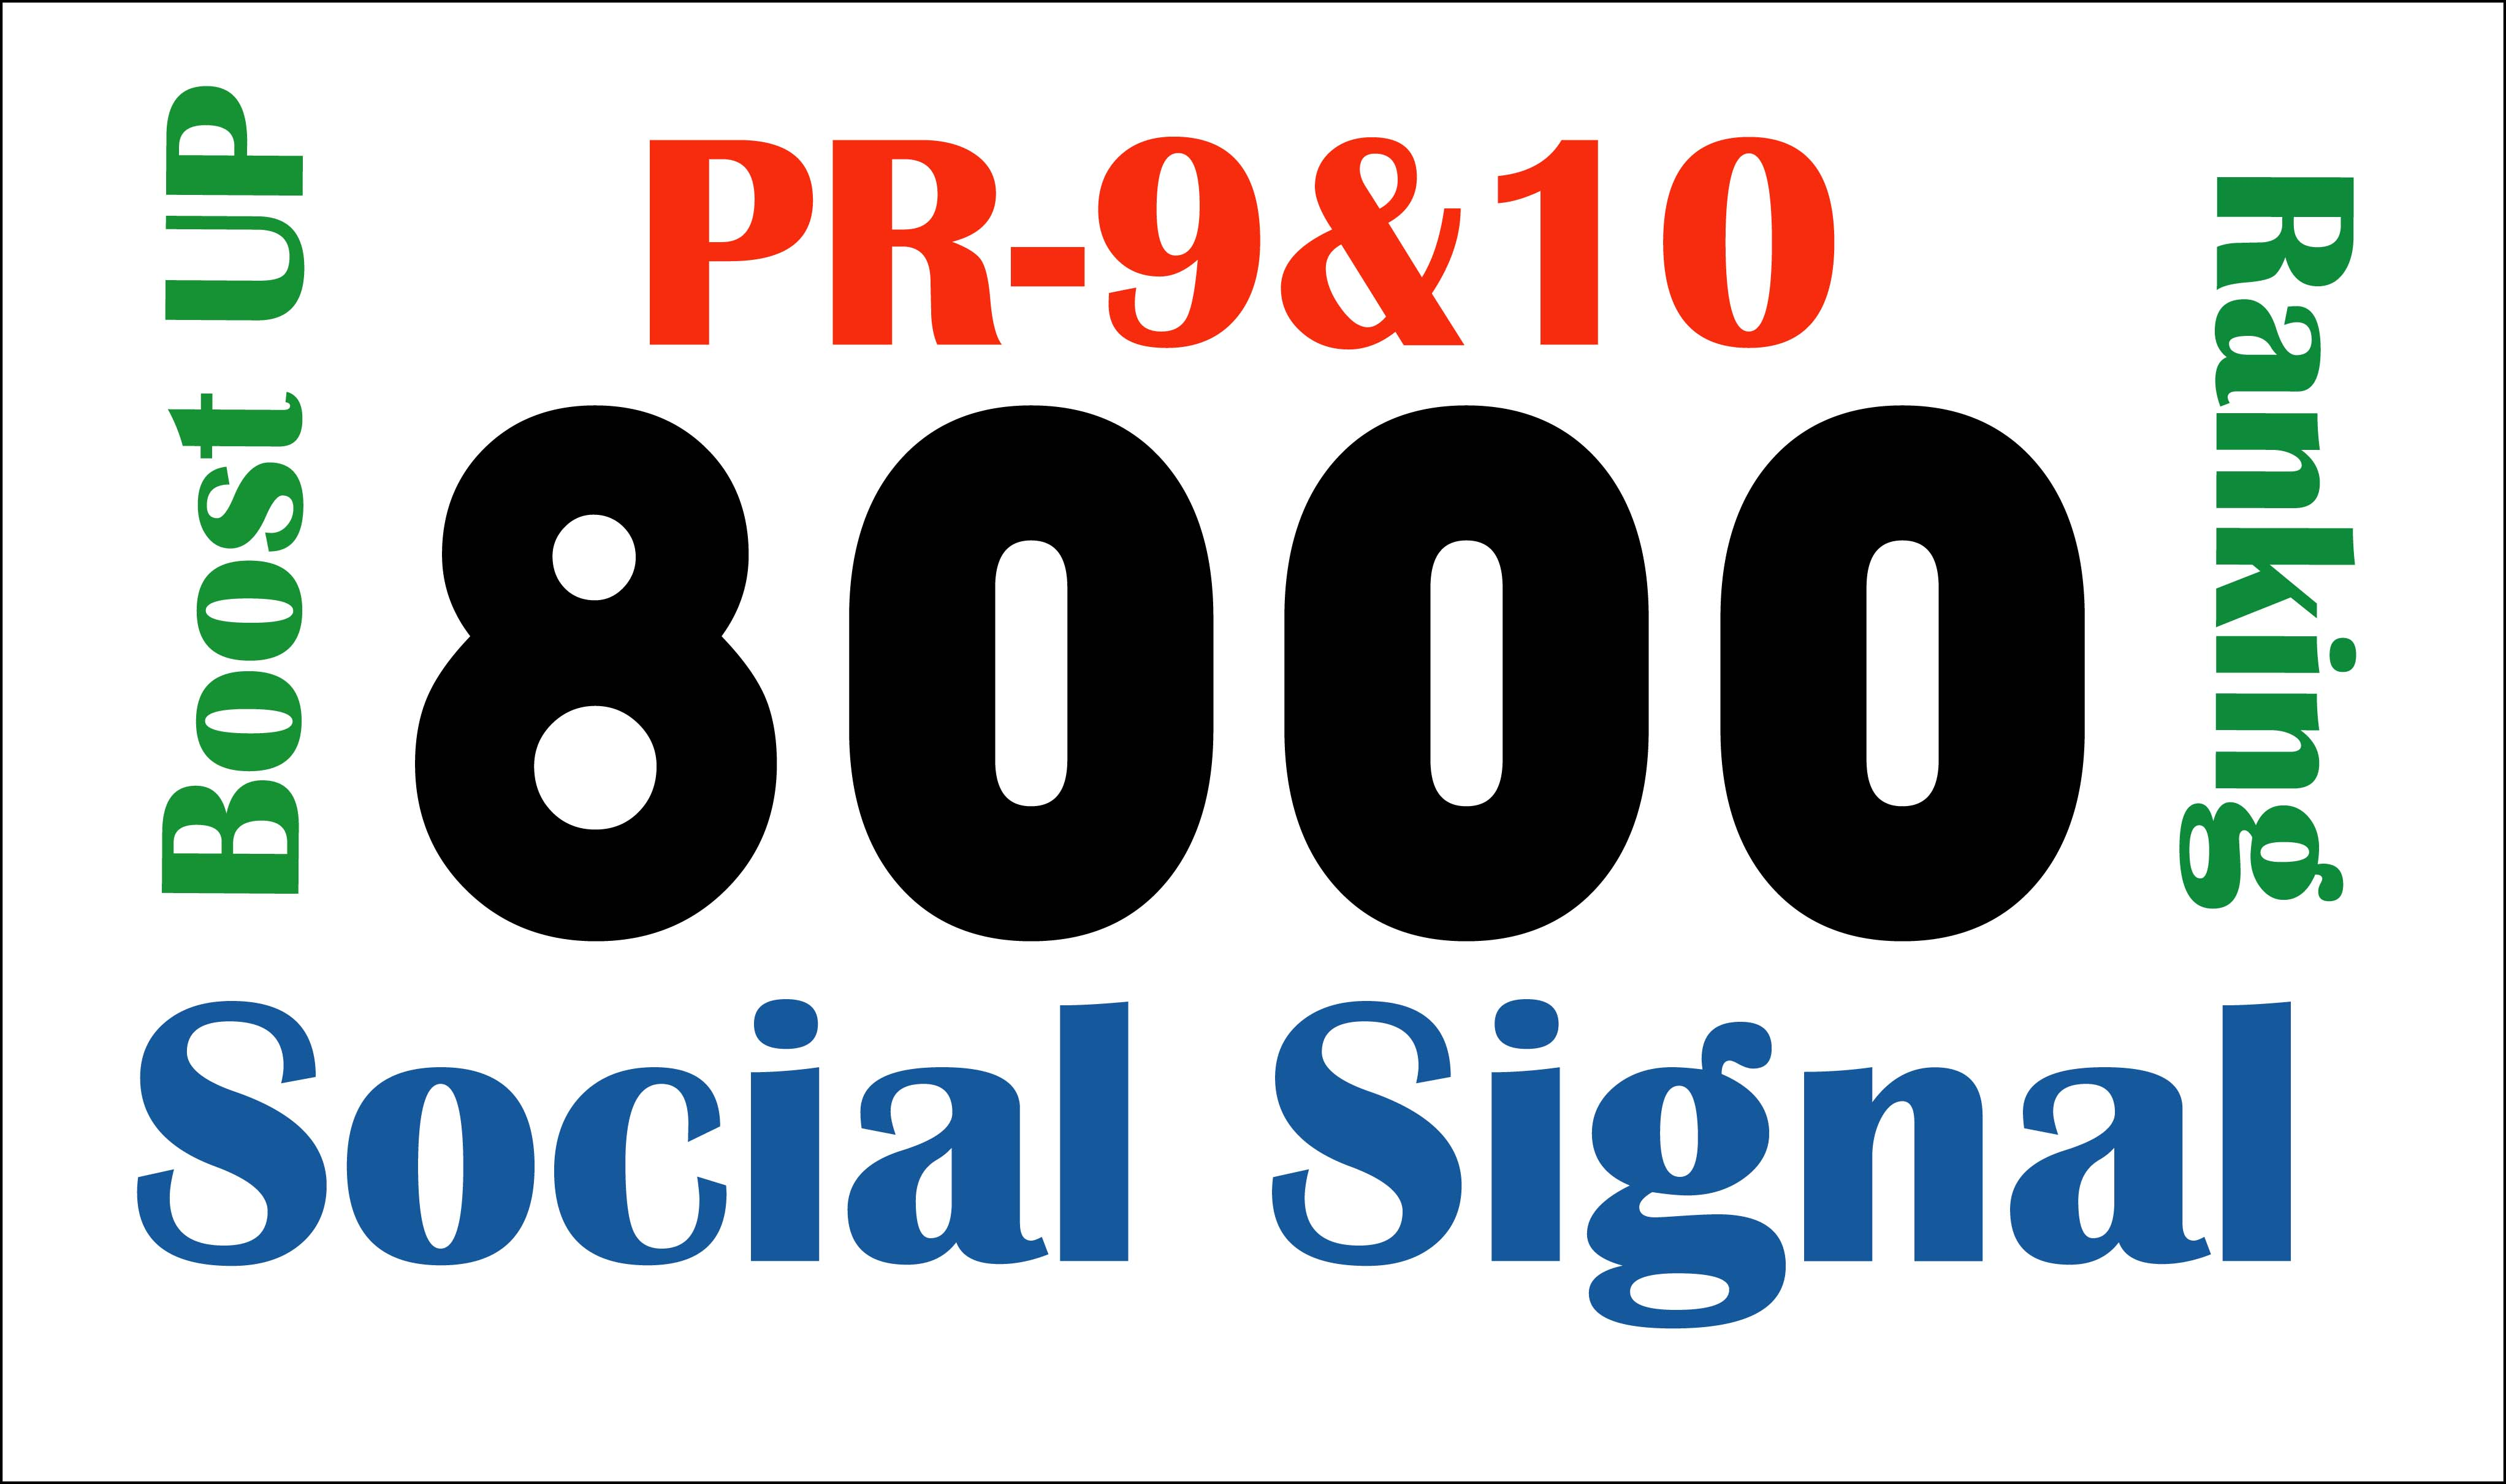 Drip Feed quality 8000 PR-10 & 9 social signals to boost your website